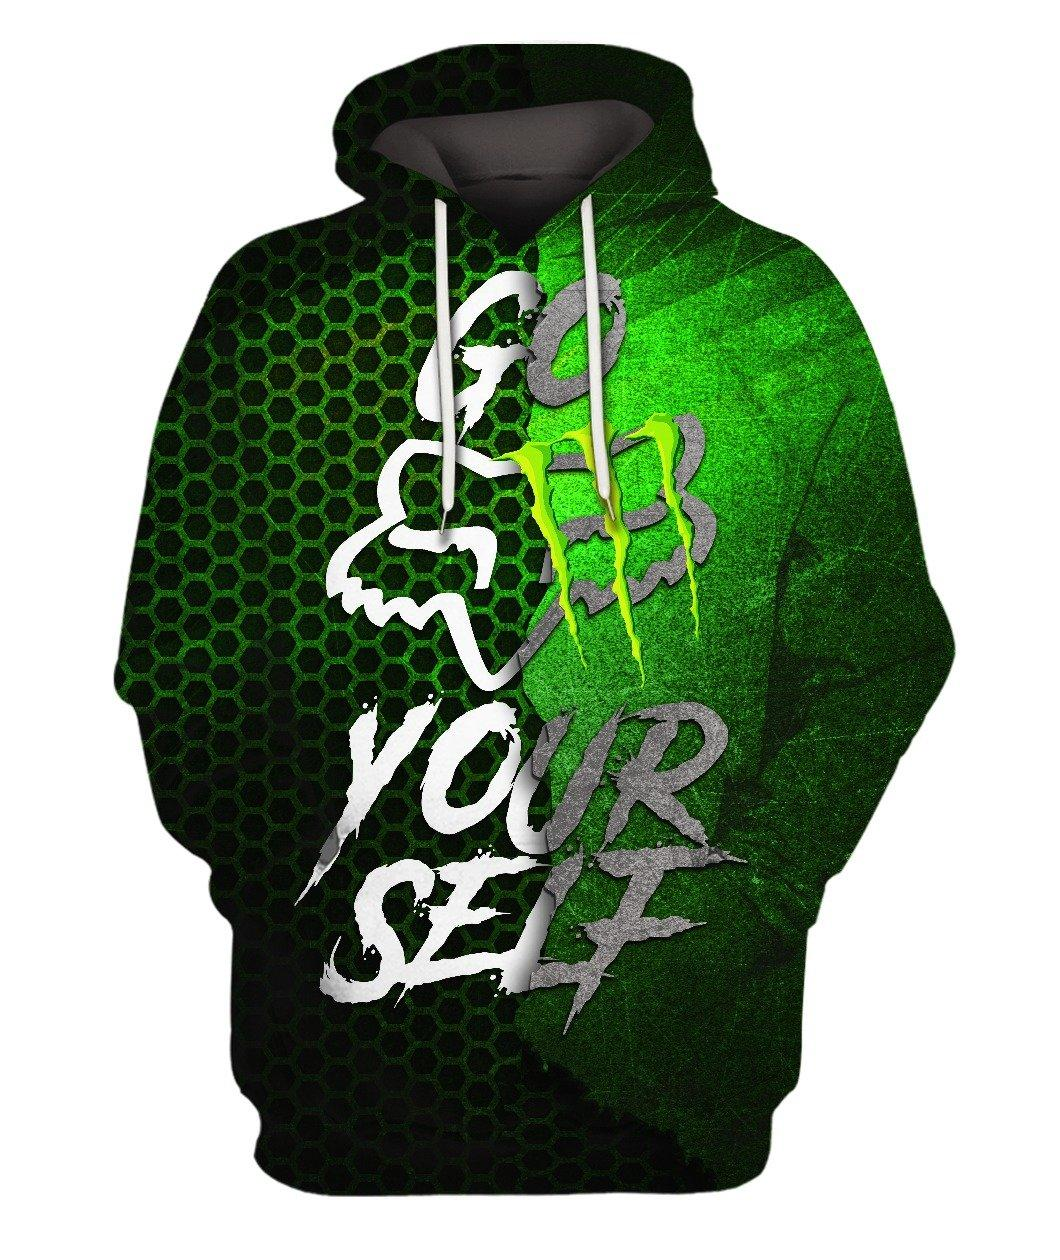 Go Yourself Fox Racing Monster Energy Green Black Full 3d 3d Graphic Printed Tshirt Hoodie Up To 5xl